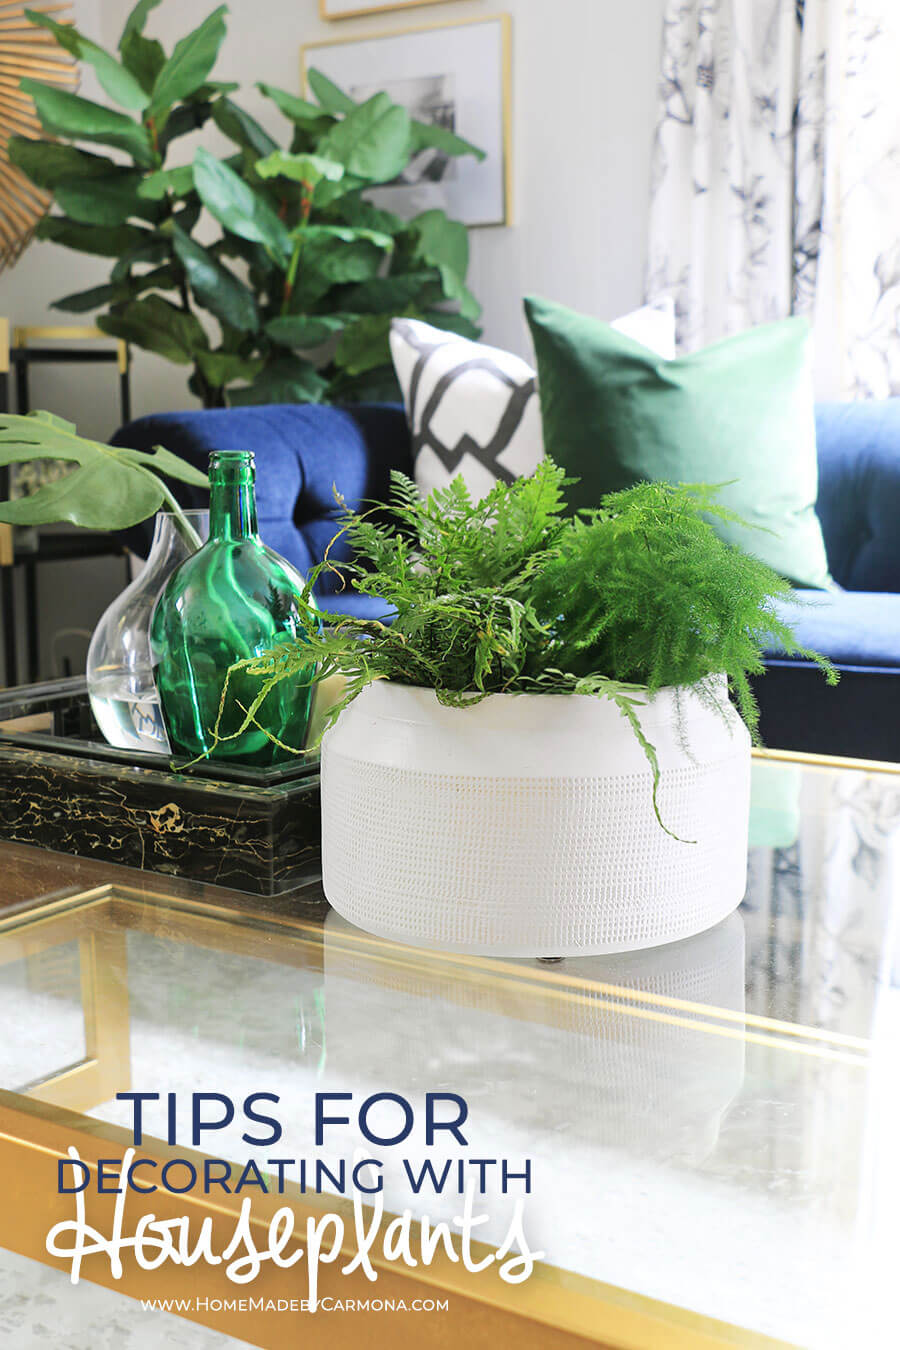 Tips For Decorating With Houseplants